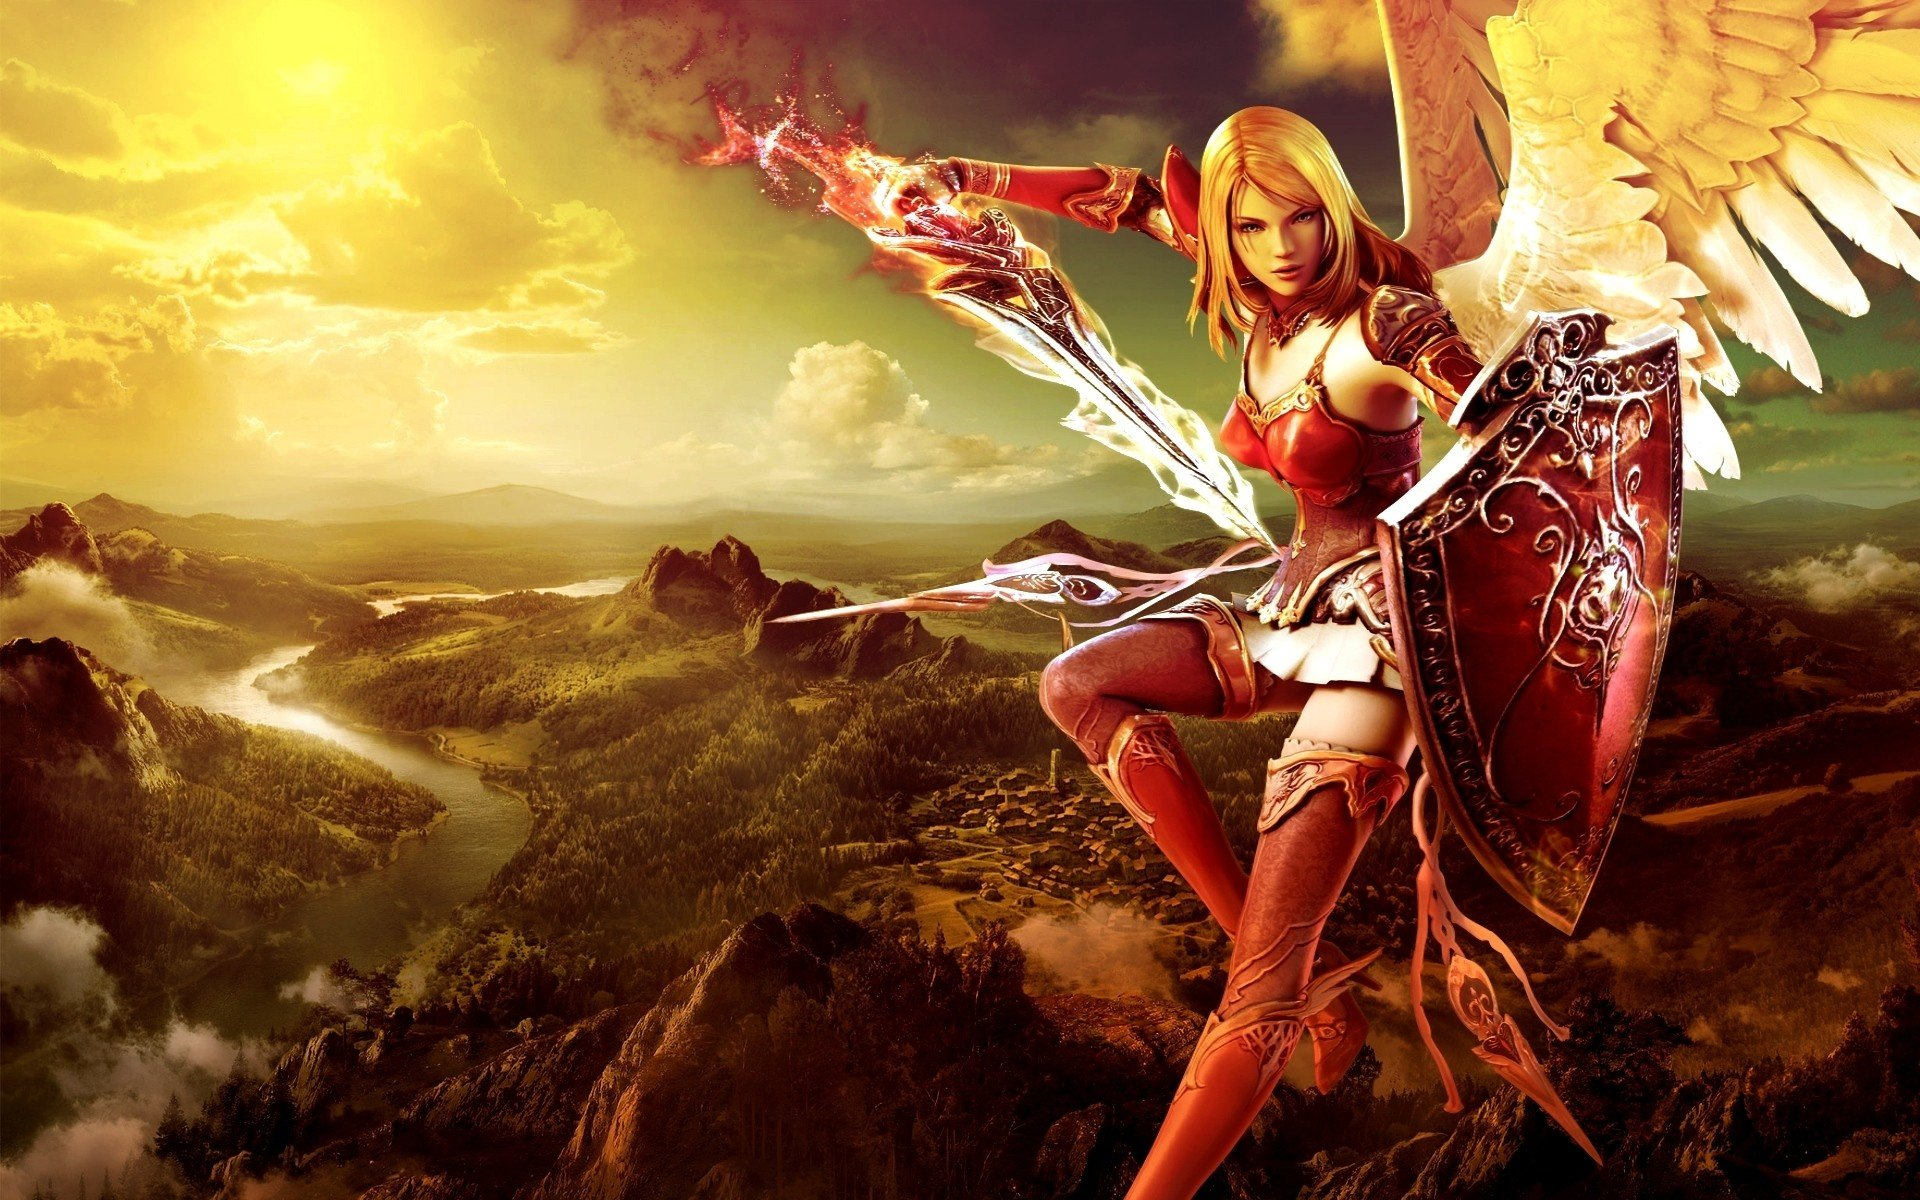 Download hd 1920x1200 Angel Warrior PC wallpaper ID:352367 for free